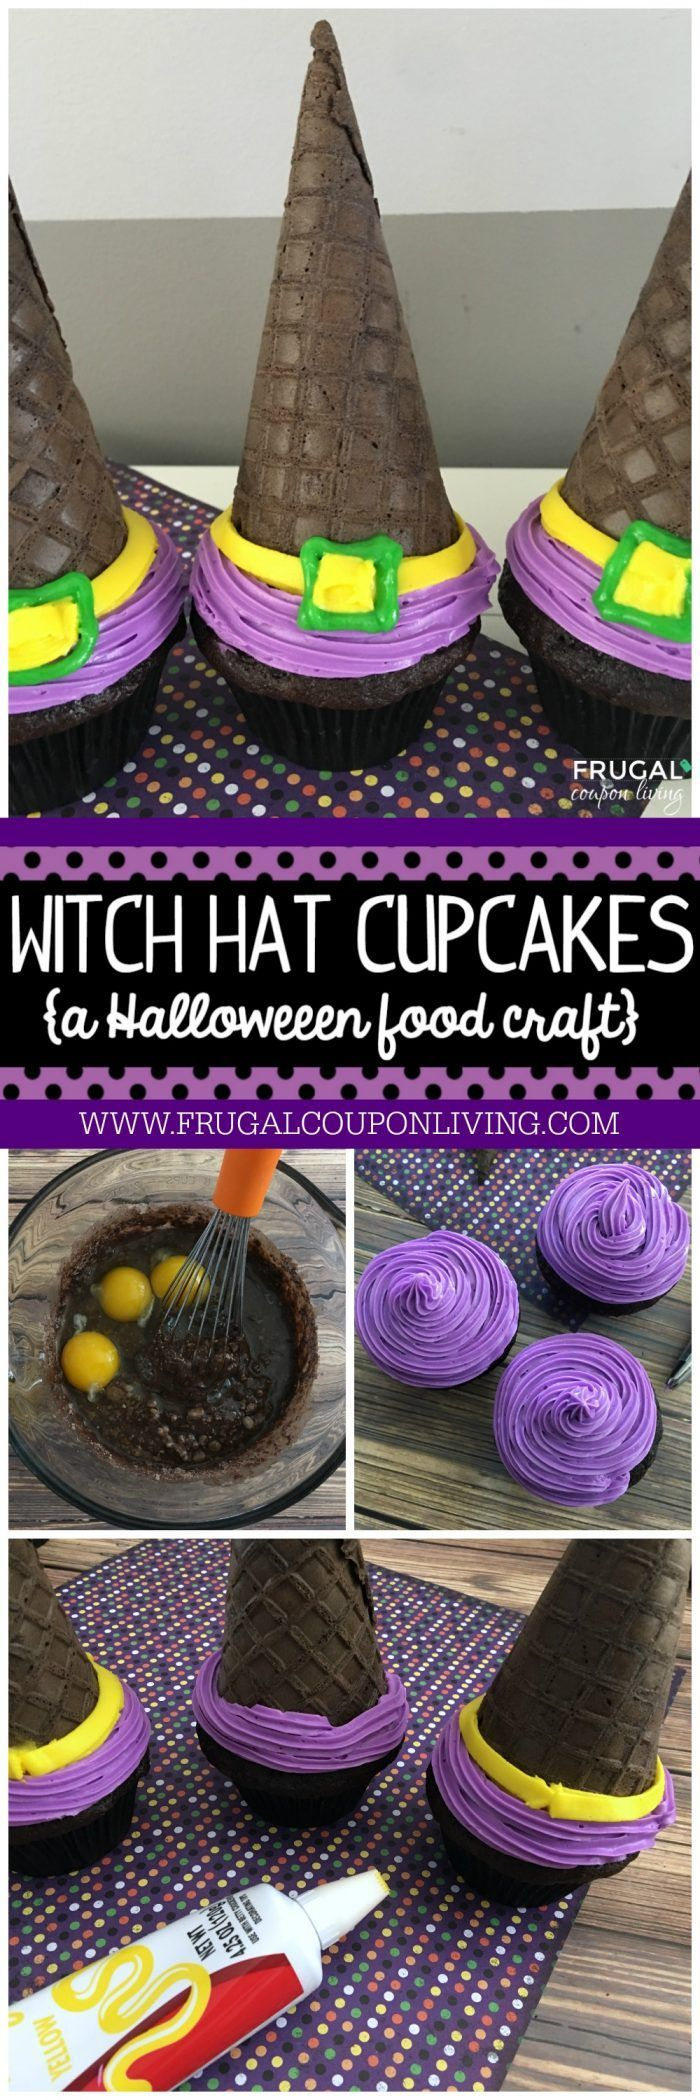 Halloween Witch Hat Cupcakes and more Halloween Food Crafts for Kids. These are fun for an October Birthday or to bring in the classroom as a Halloween Dessert. Recipe on Frugal Coupon Living.